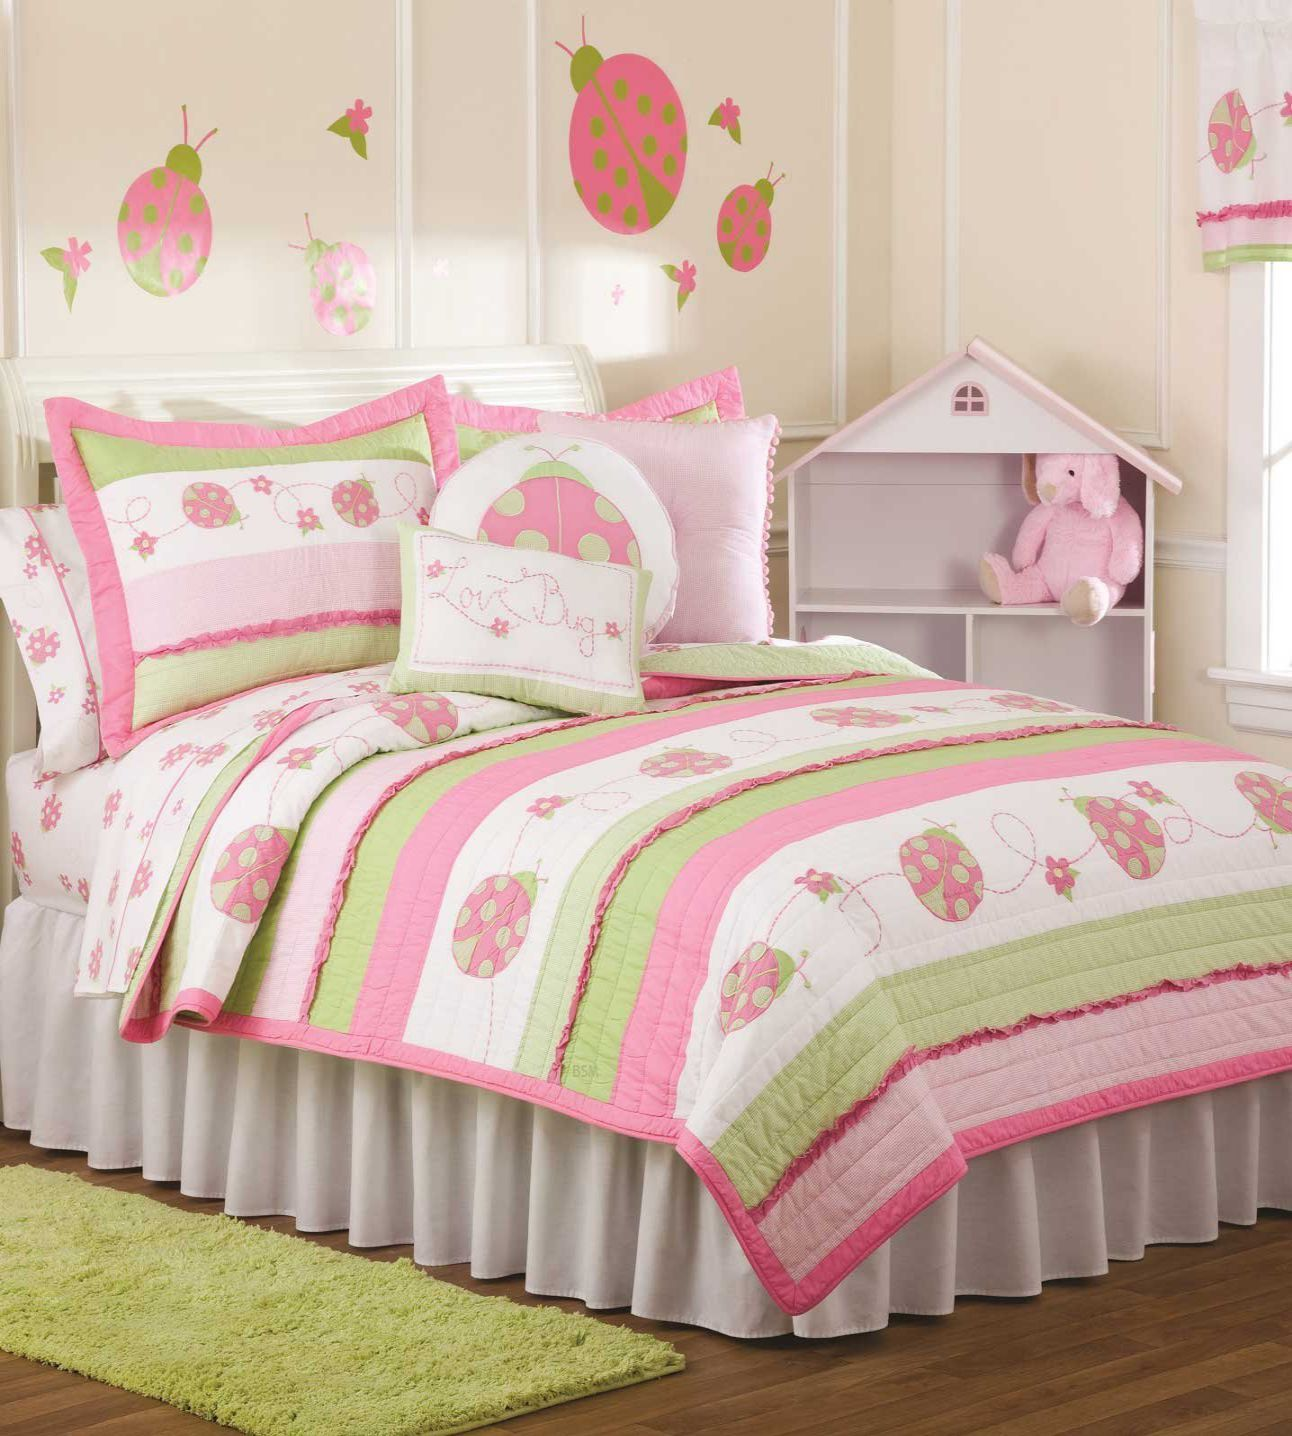 Pem America Crazy Ladybug Full Queen Quilt Set